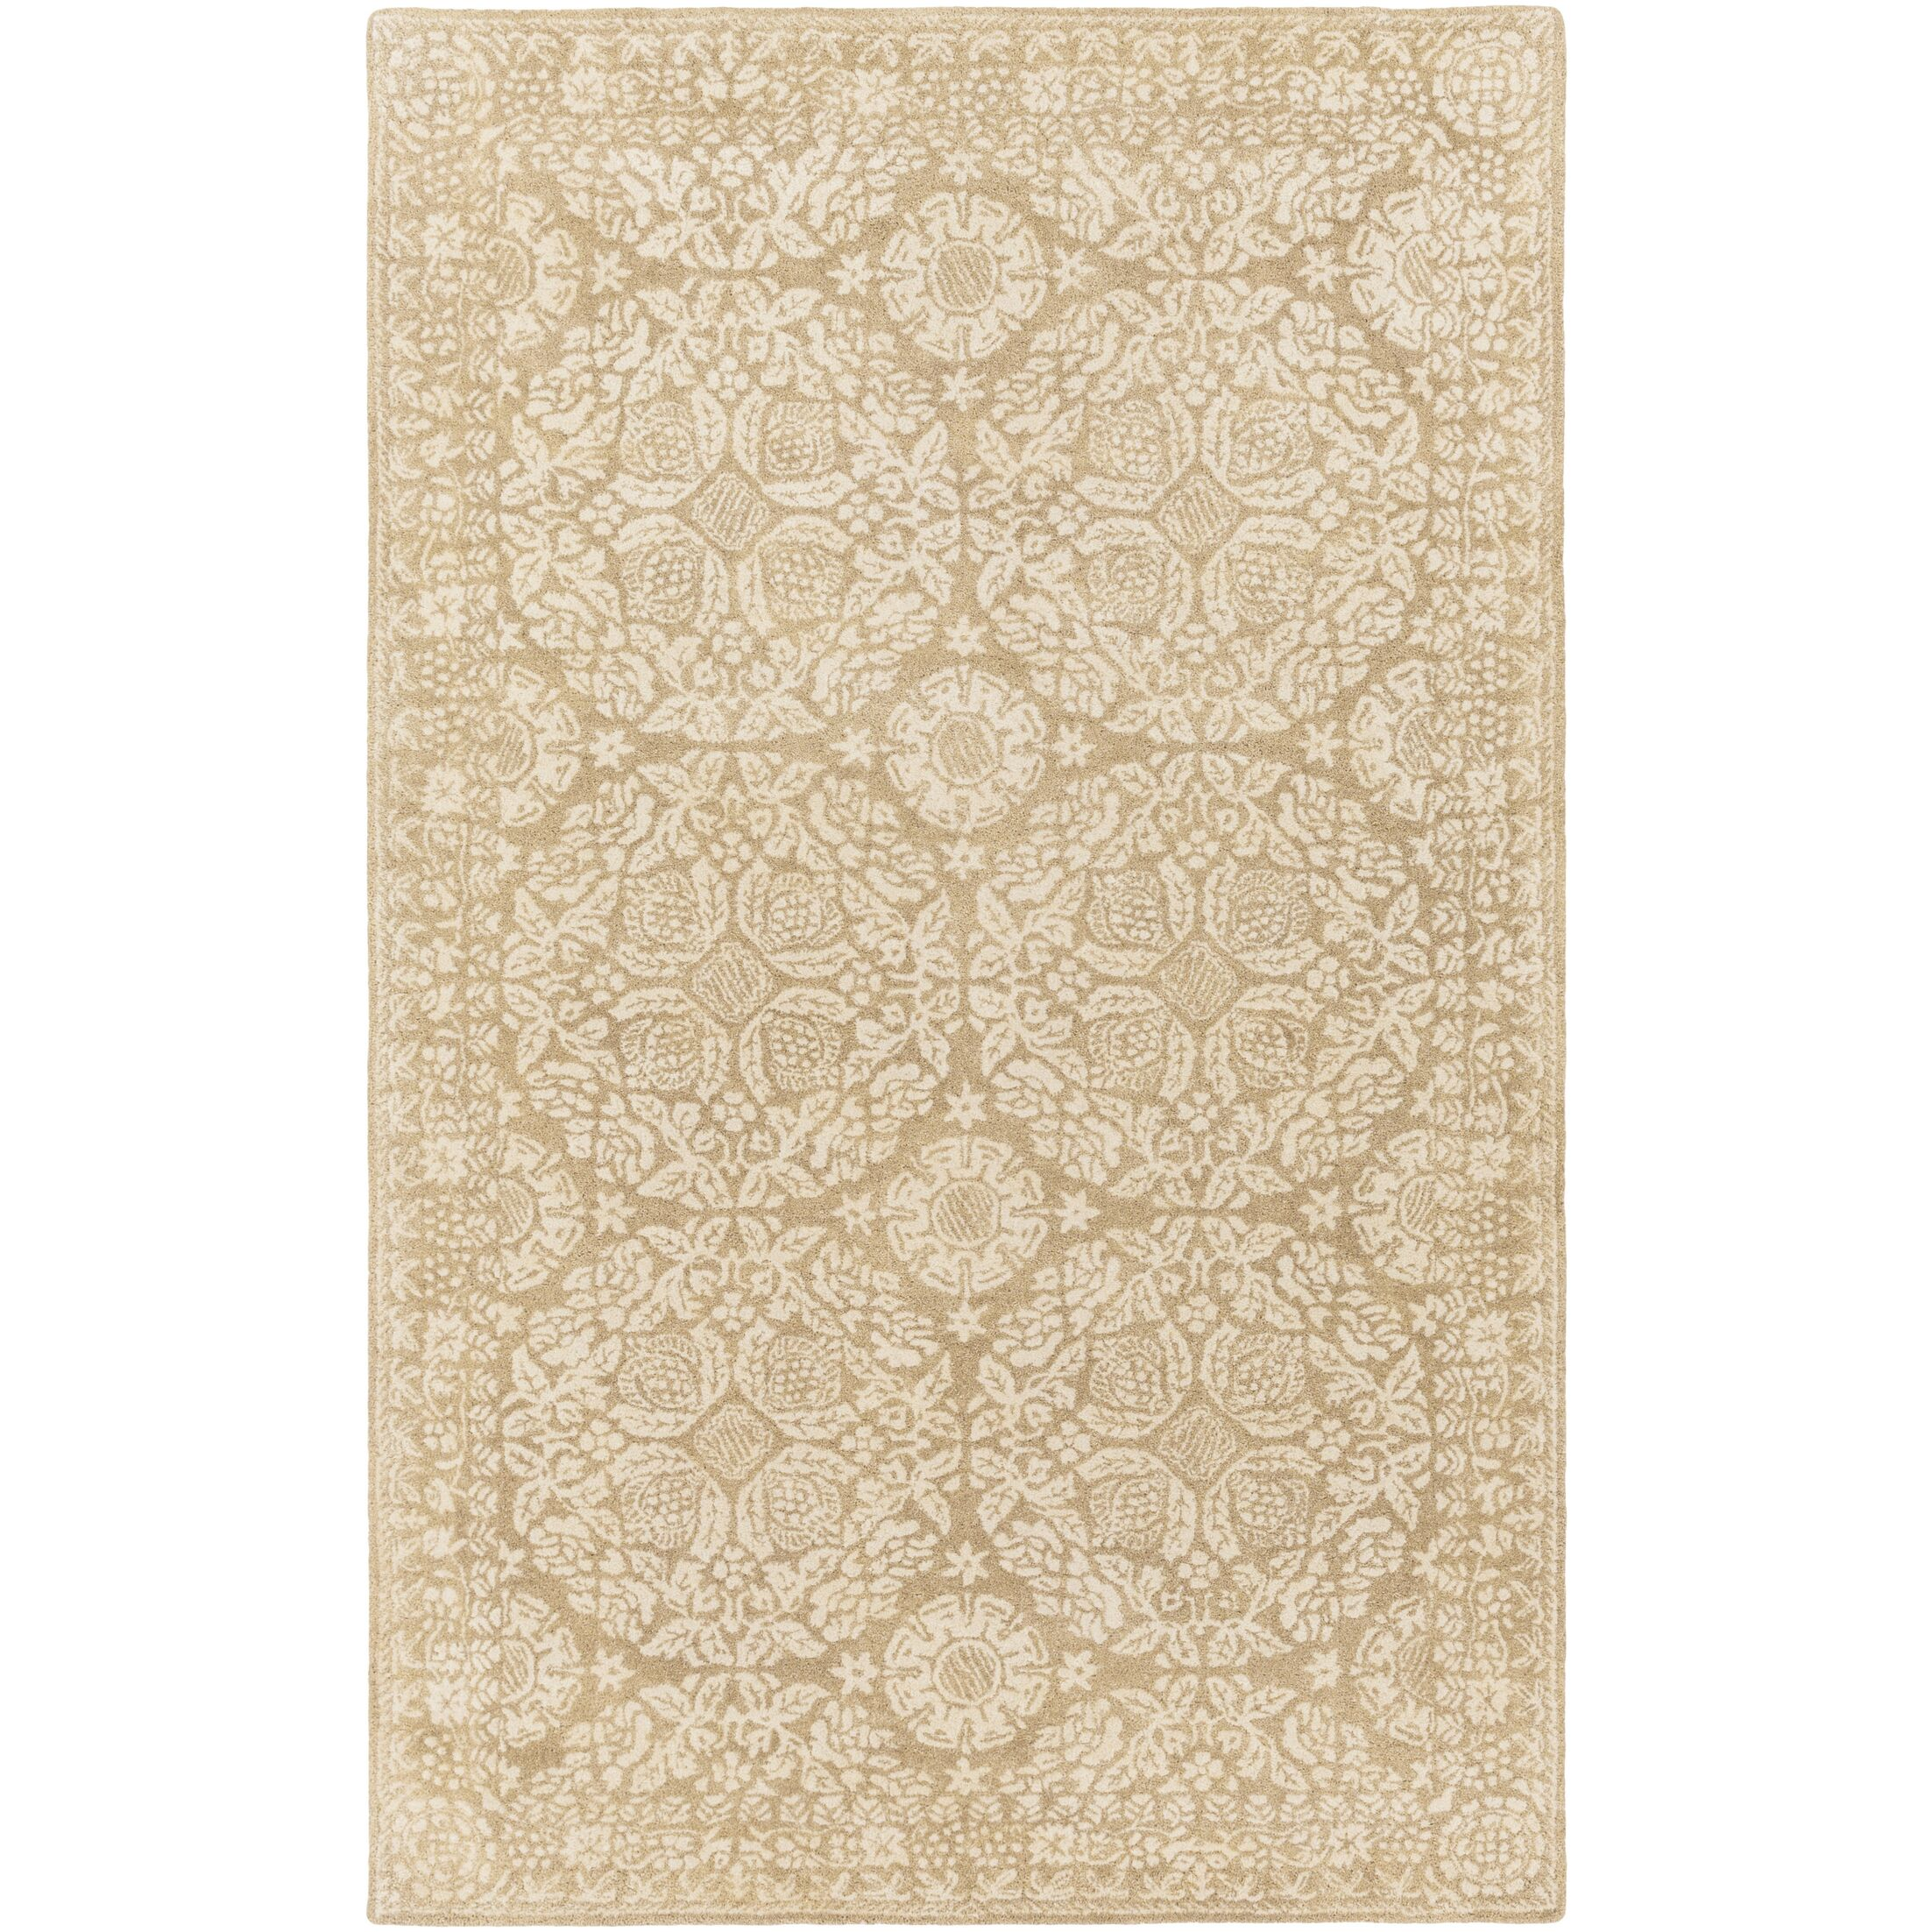 Smithsonian Hand-Tufted Green/Neutral Area Rug Rug Size: Rectangle 3'3